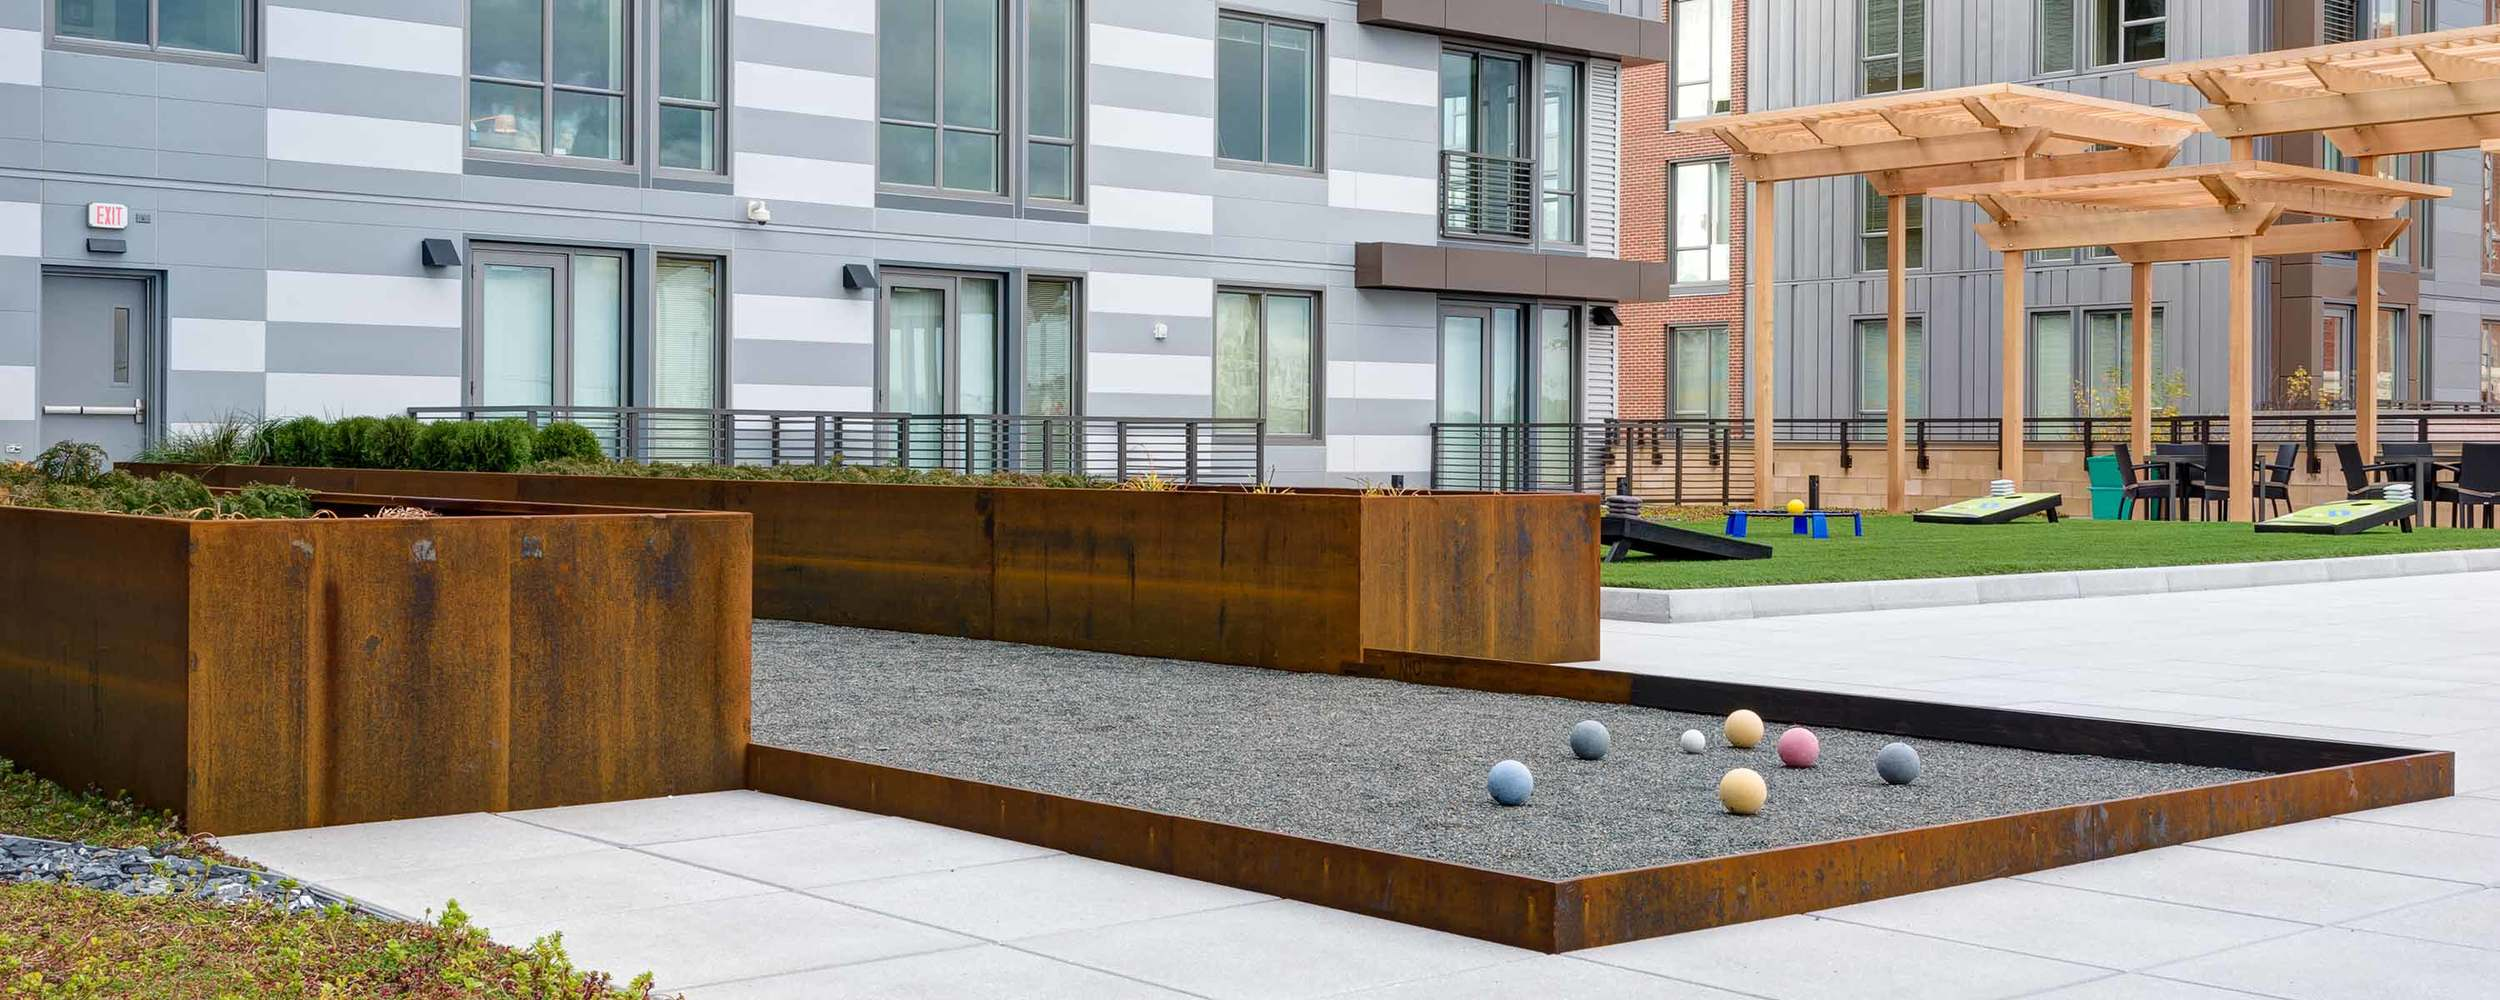 Flats on D KZLA Planting Bed System Corten Steel